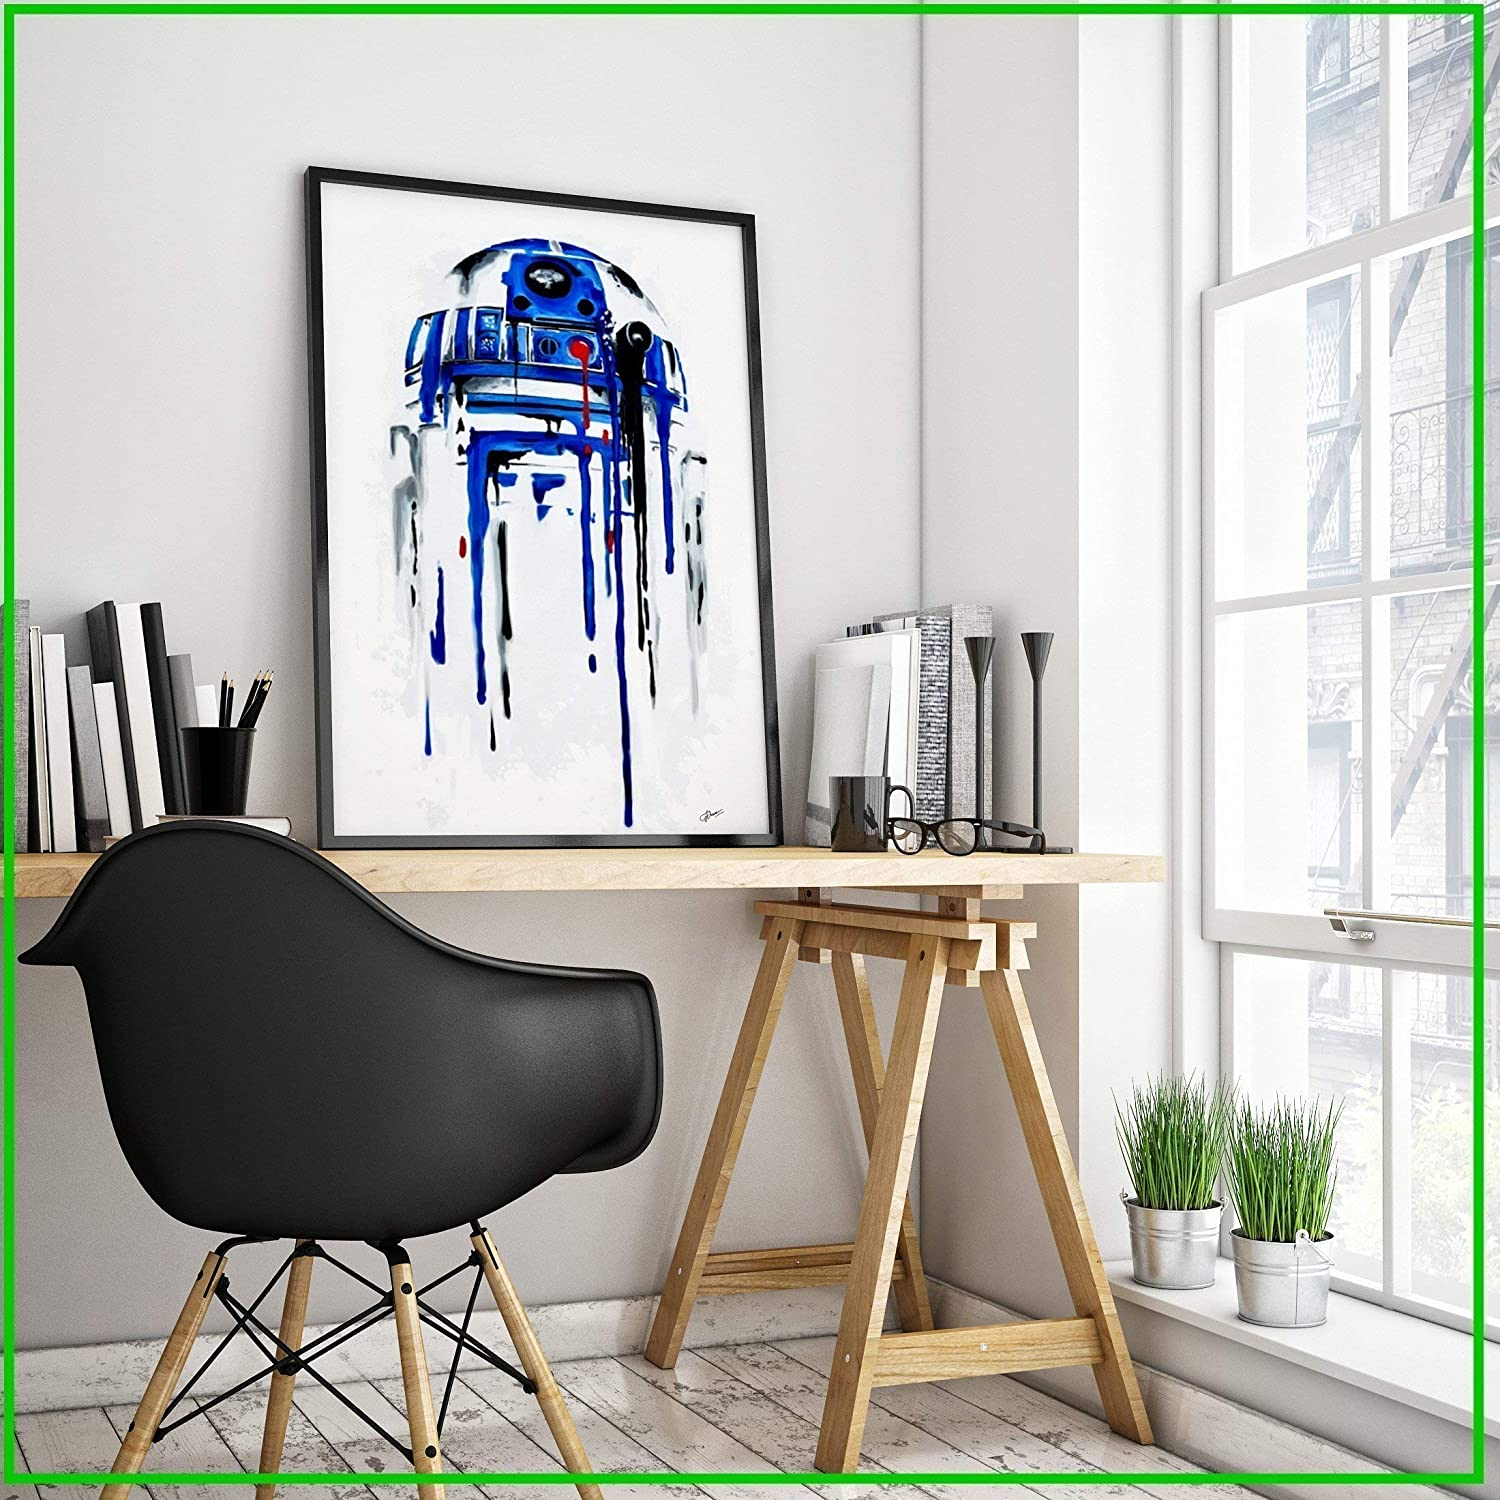 Star Wars R2D2 original painting or art print